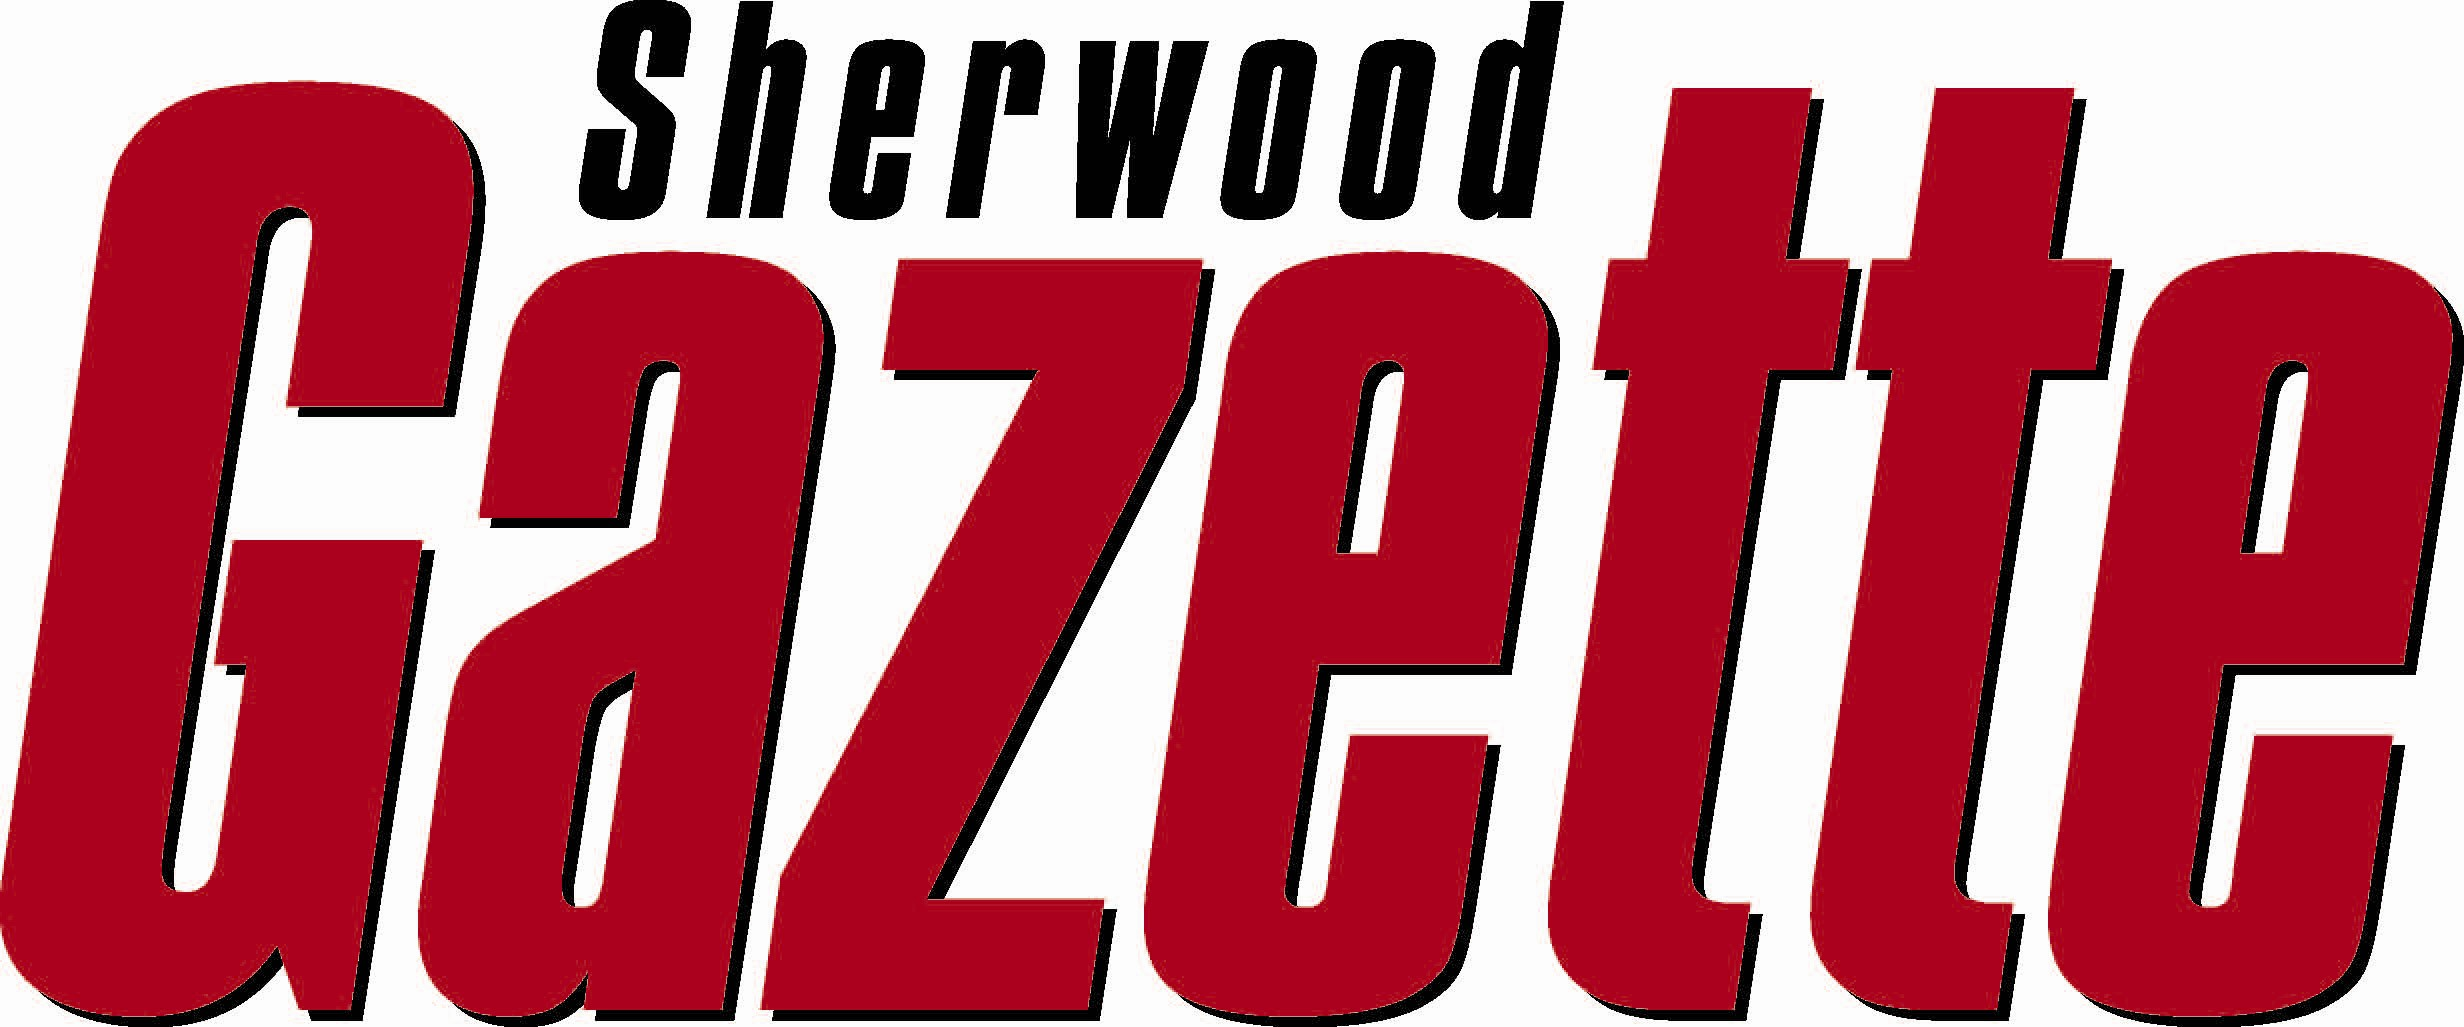 Sherwood Gazette Logo